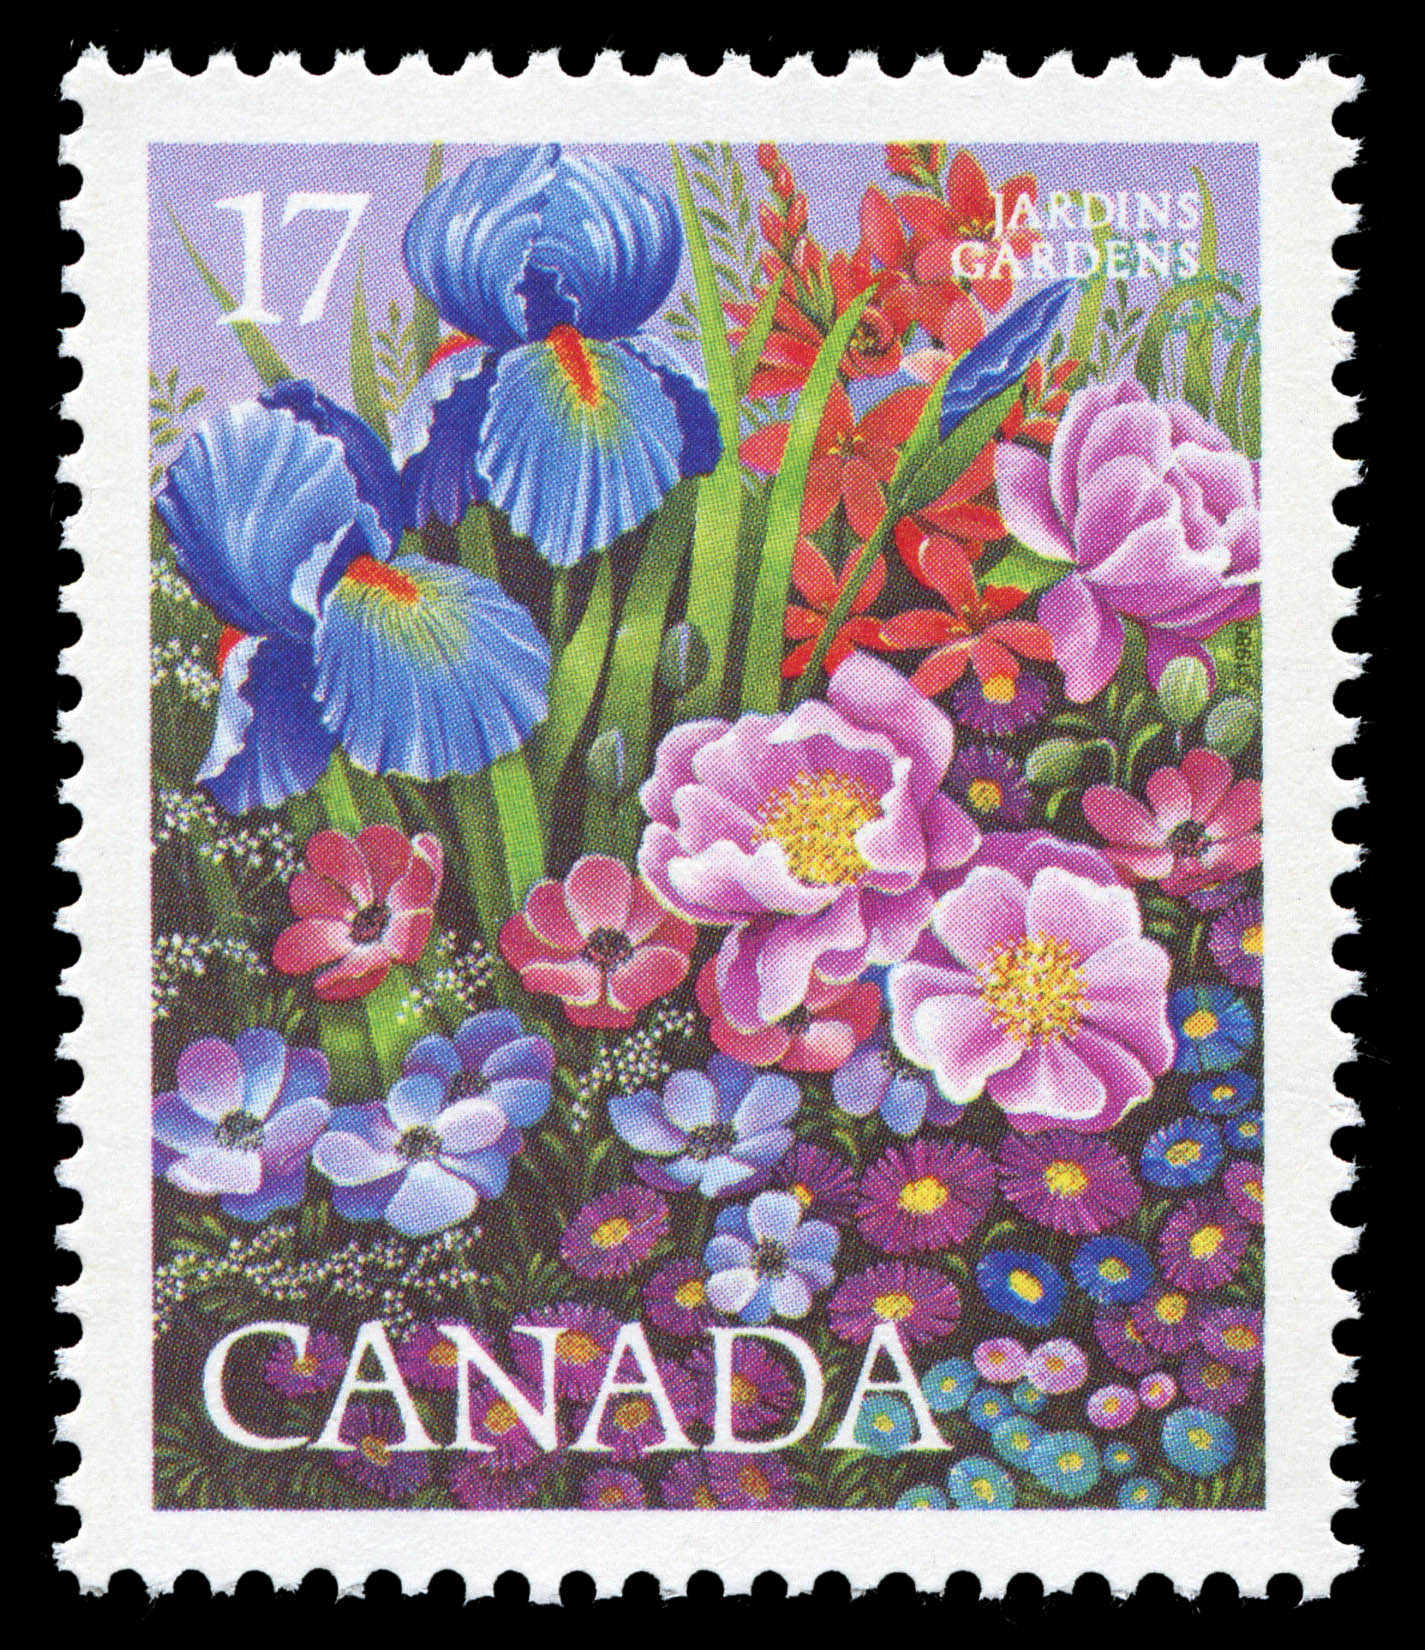 Gardens Canada Postage Stamp